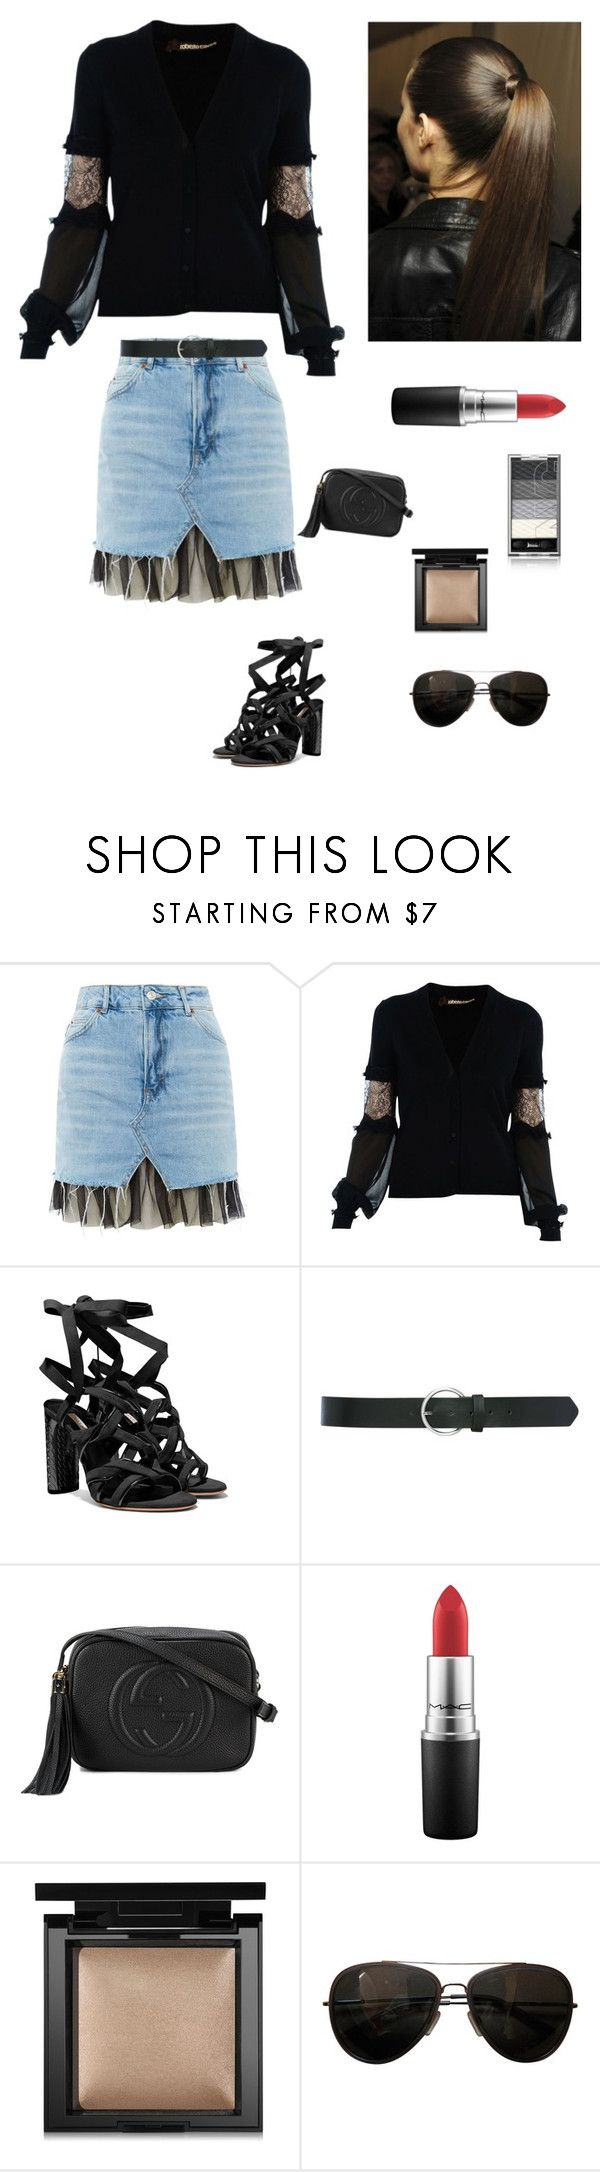 """""""Summer Ponytail"""" by kotnourka ❤ liked on Polyvore featuring Topshop, Roberto Cavalli, M&Co, Gucci, MAC Cosmetics, Bare Escentuals and Tod's"""